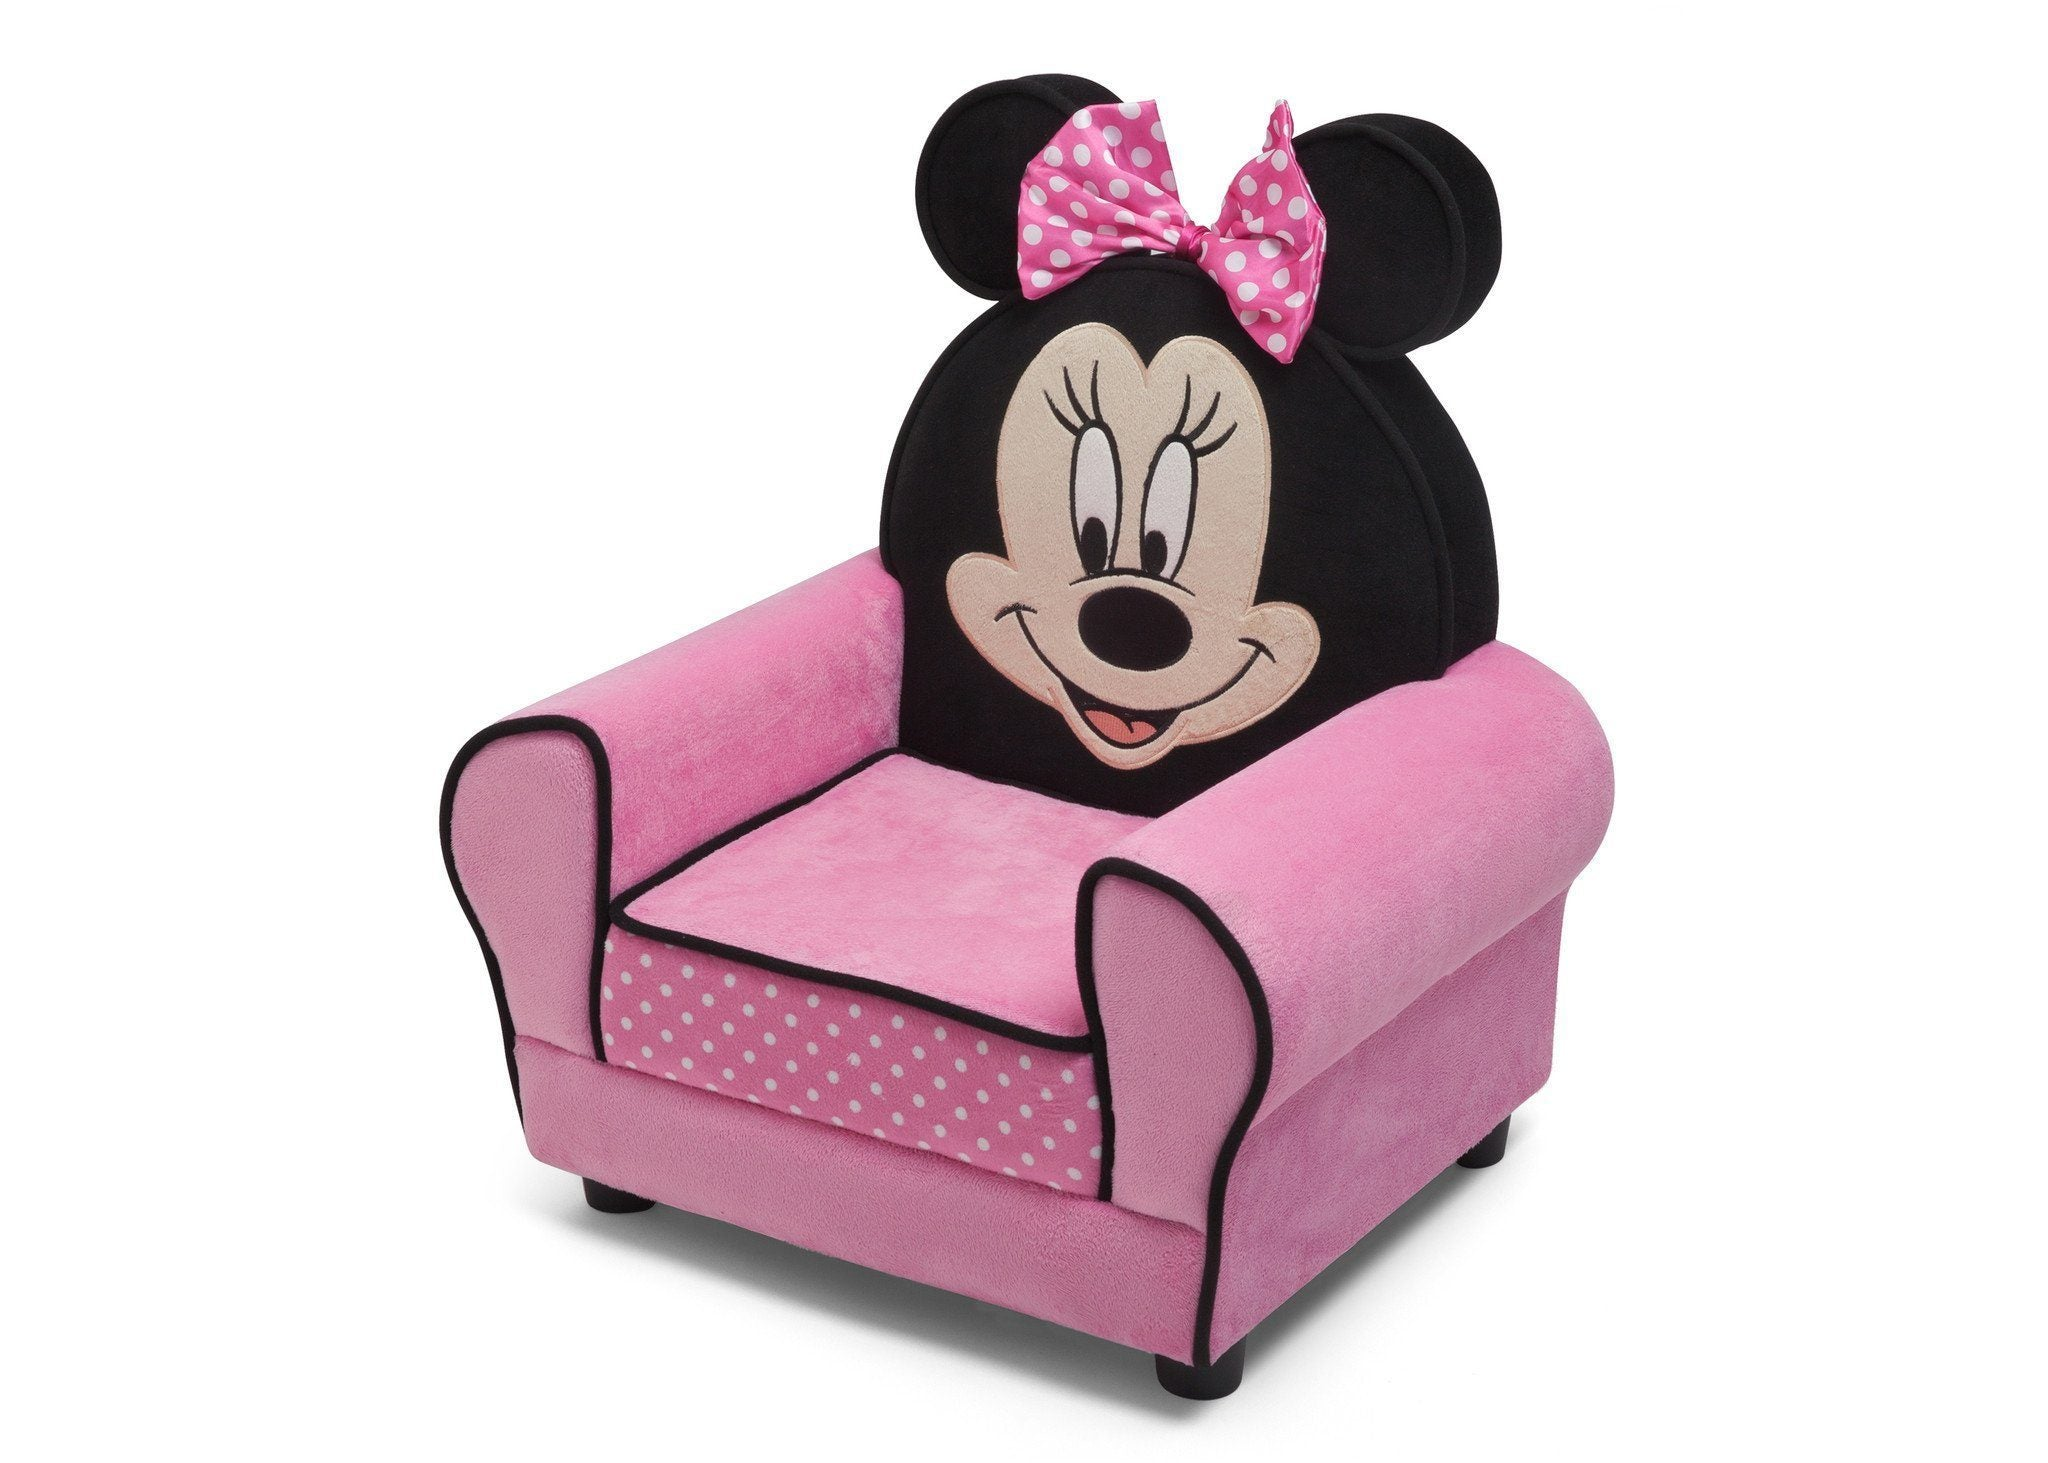 ... Delta Children Minnie Figural Upholstered Chair Left Side View A2a